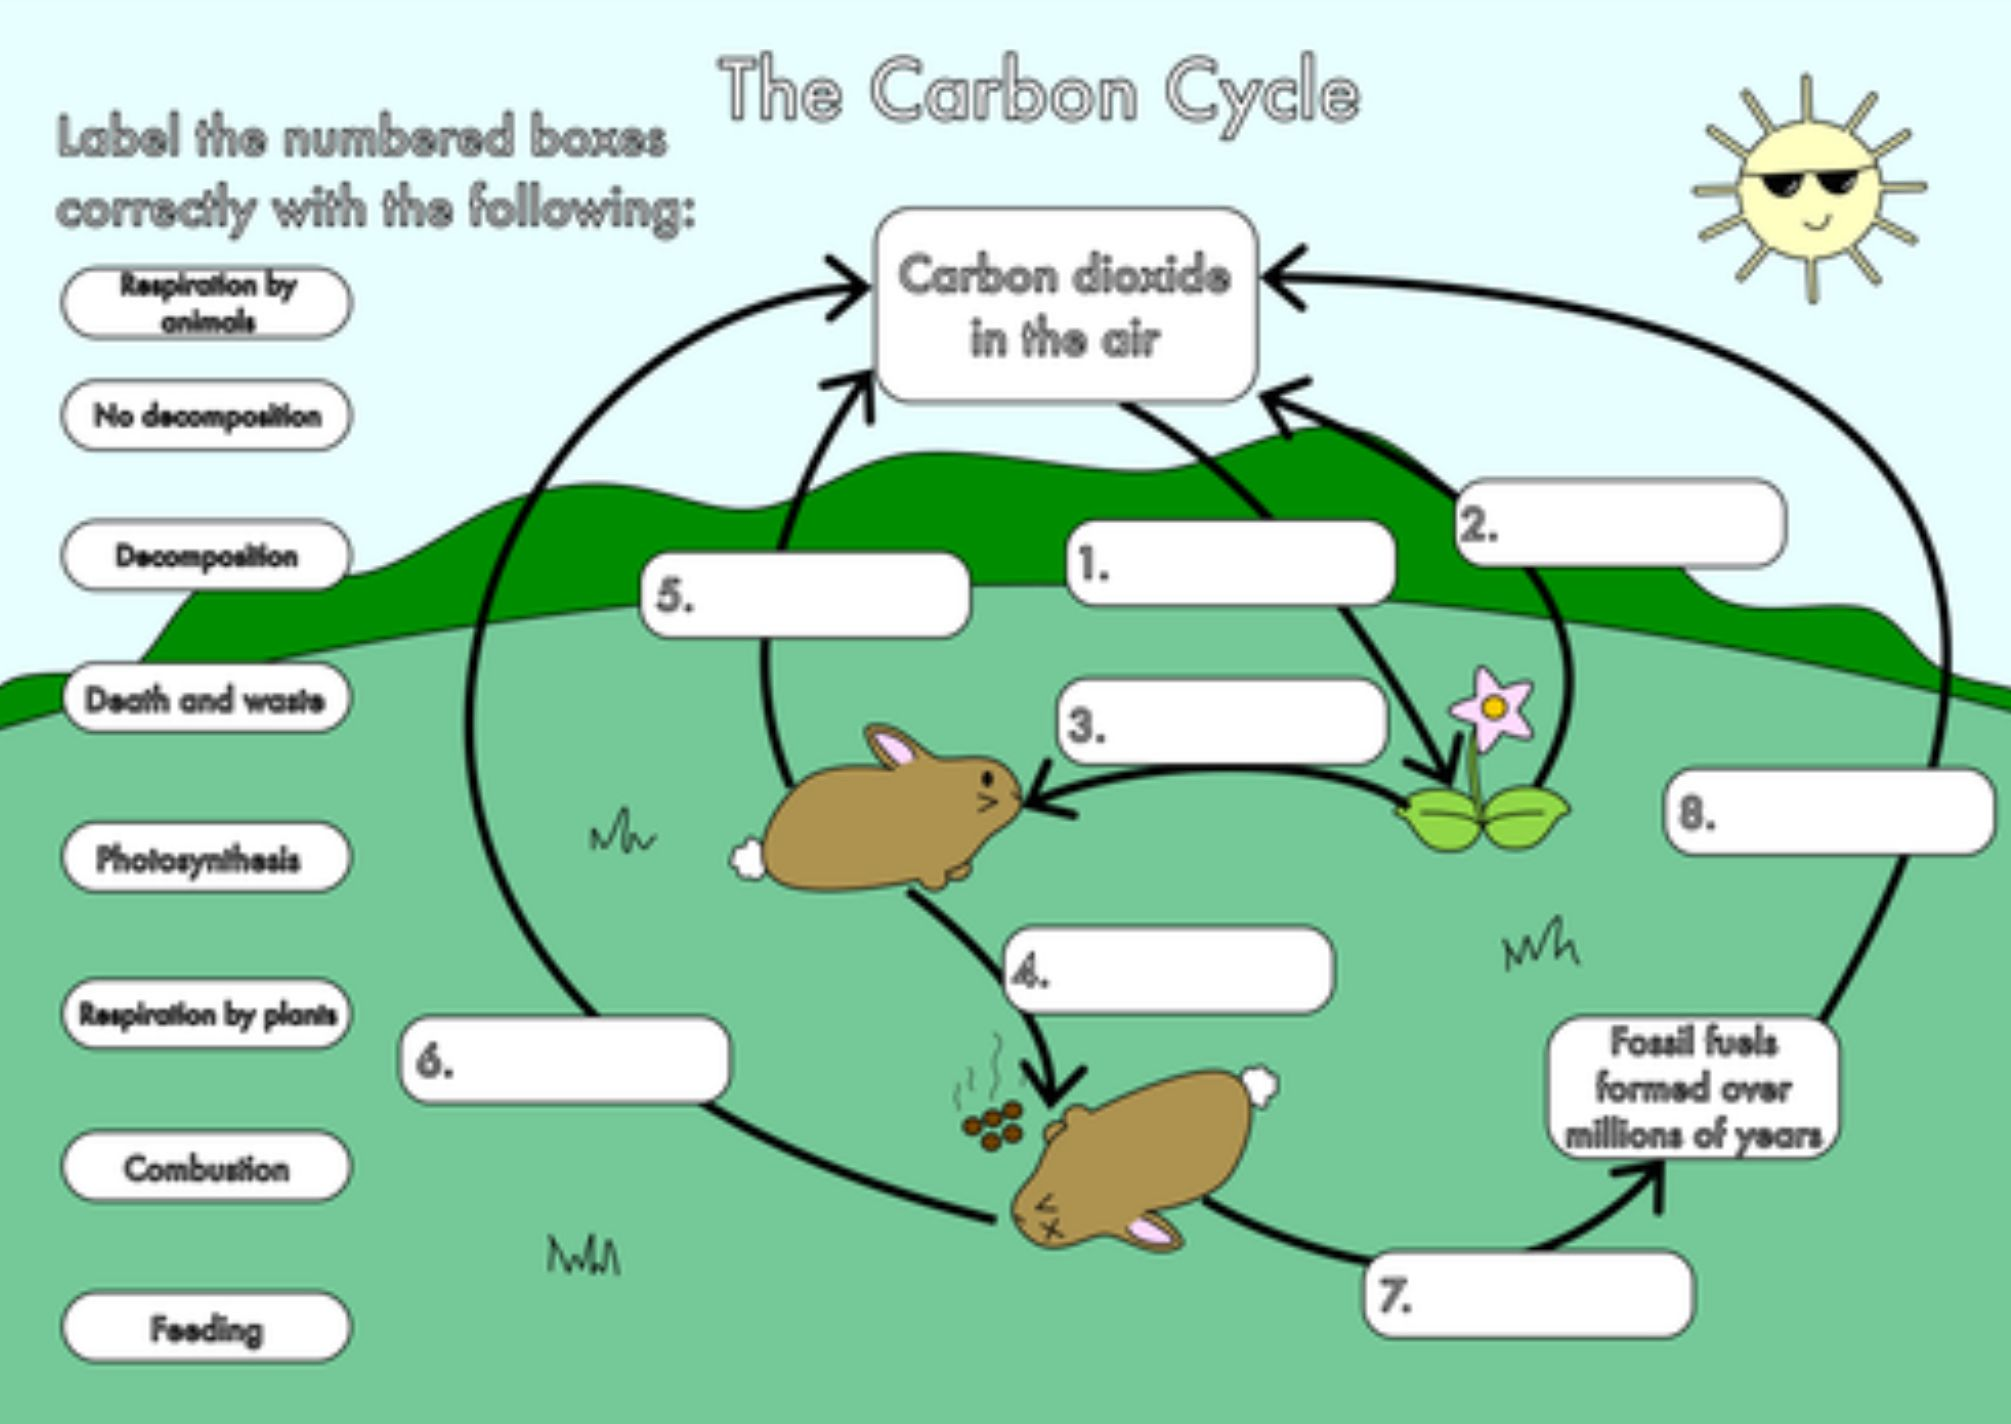 hight resolution of the carbon cycle worksheet 1 thursday may 23 2019 snc1d carbon cycle diagram fill in the blank carbon cycle diagram fill in